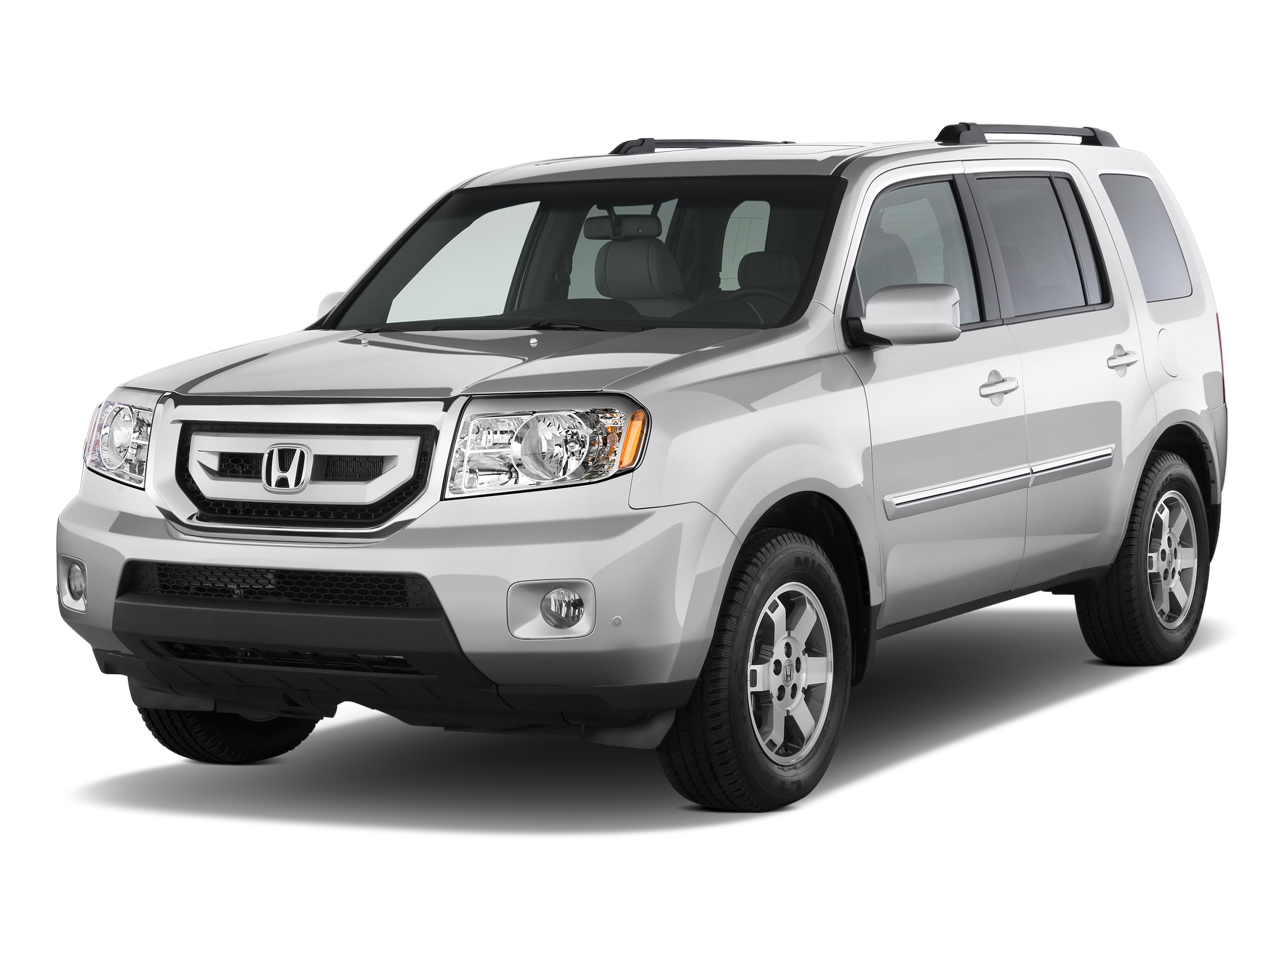 2011 Honda Pilot Safety Review And Crash Test Ratings The Car Connection